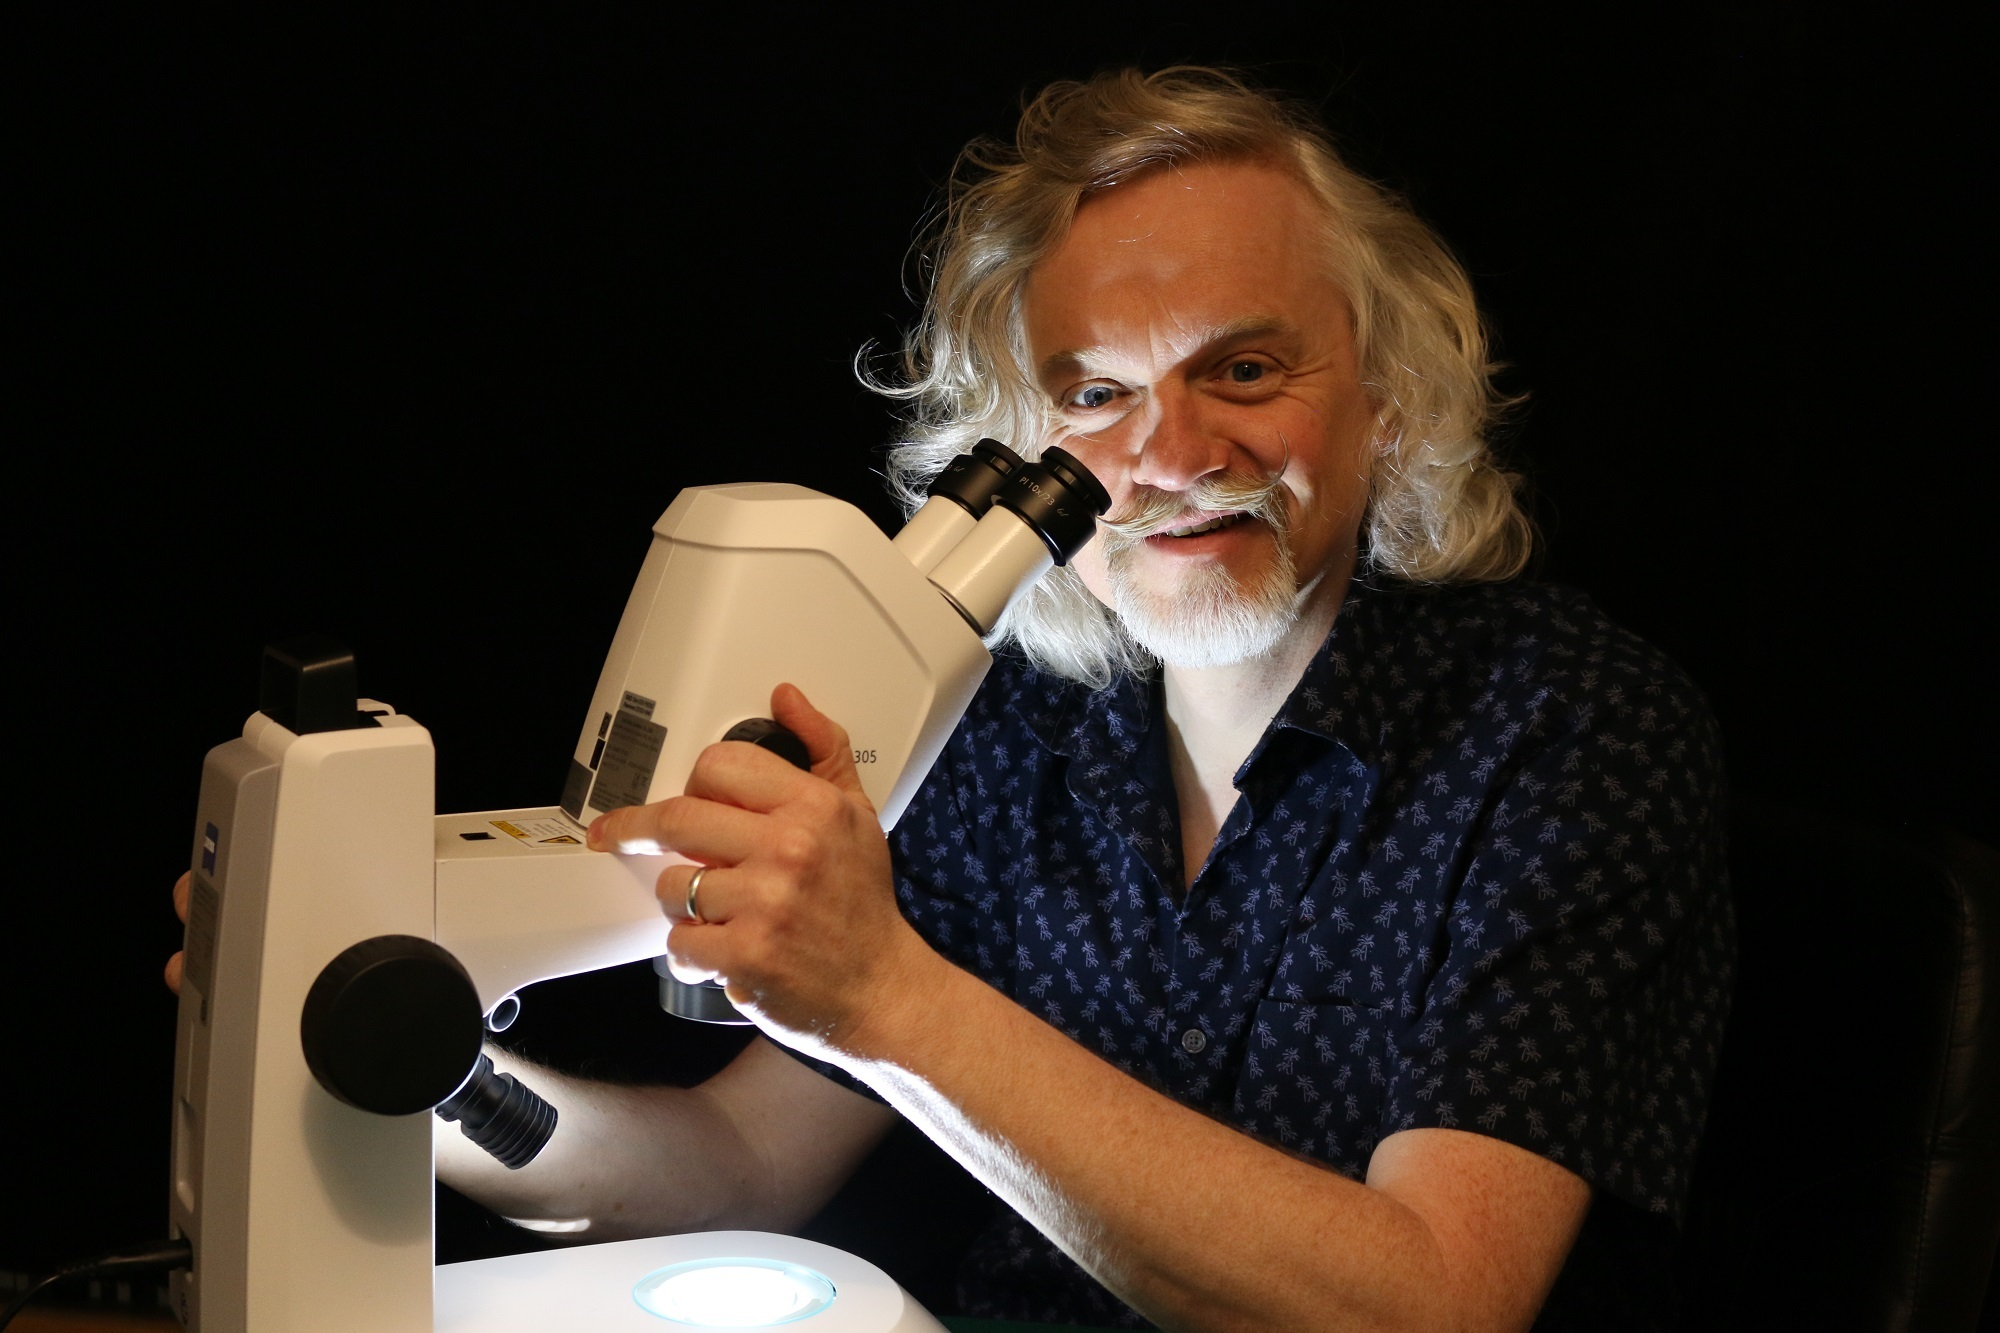 Dr Marty Jopson is preparing to take Otley Science Festival visitors on a microscopic safari